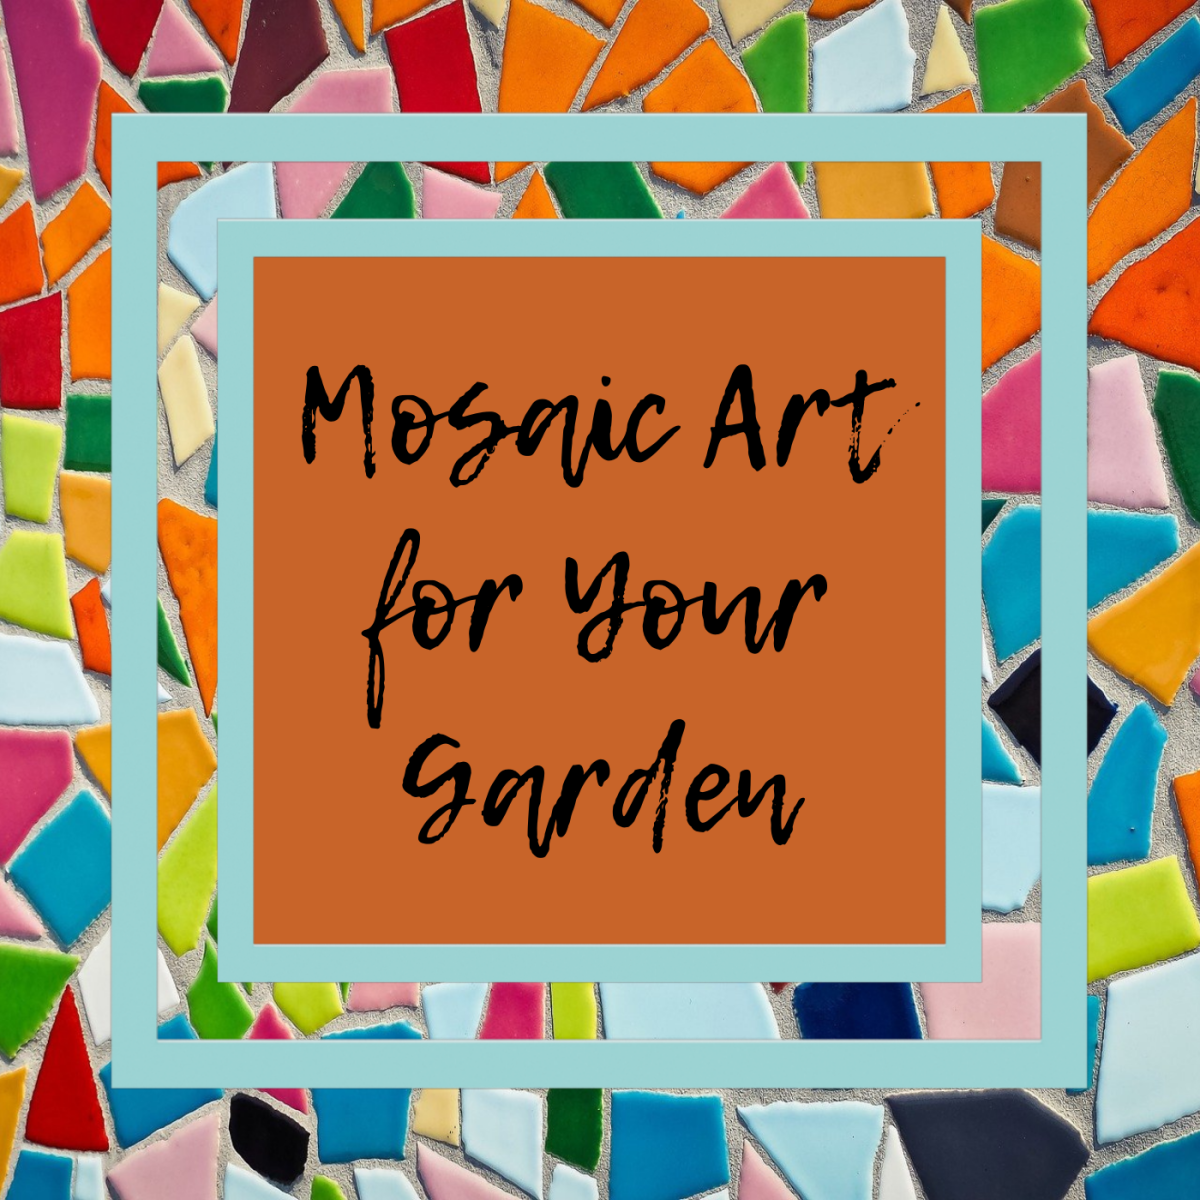 5 Mosaic art projects for your garden